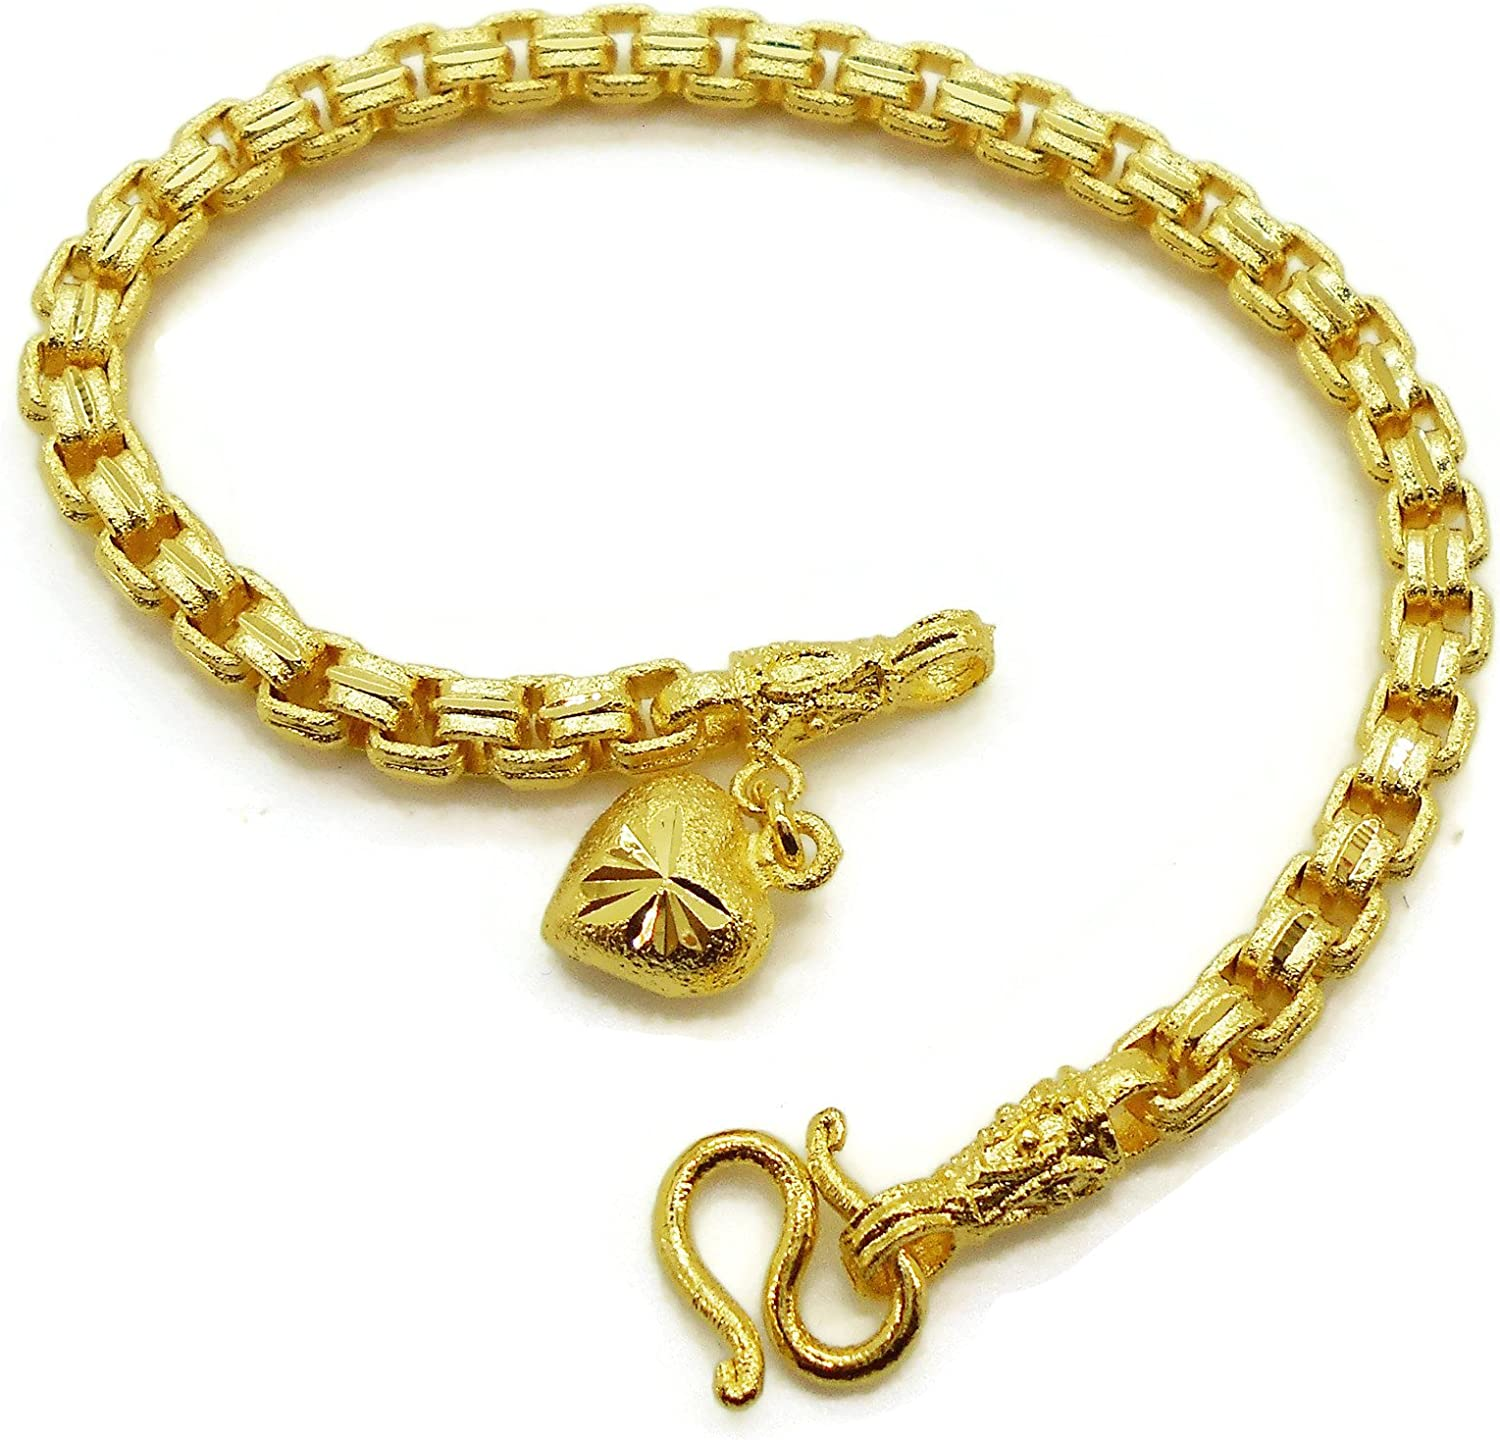 New Pure 18K Yellow Gold DIY Weave Bracelet Or Necklace 4mm Loose Bead